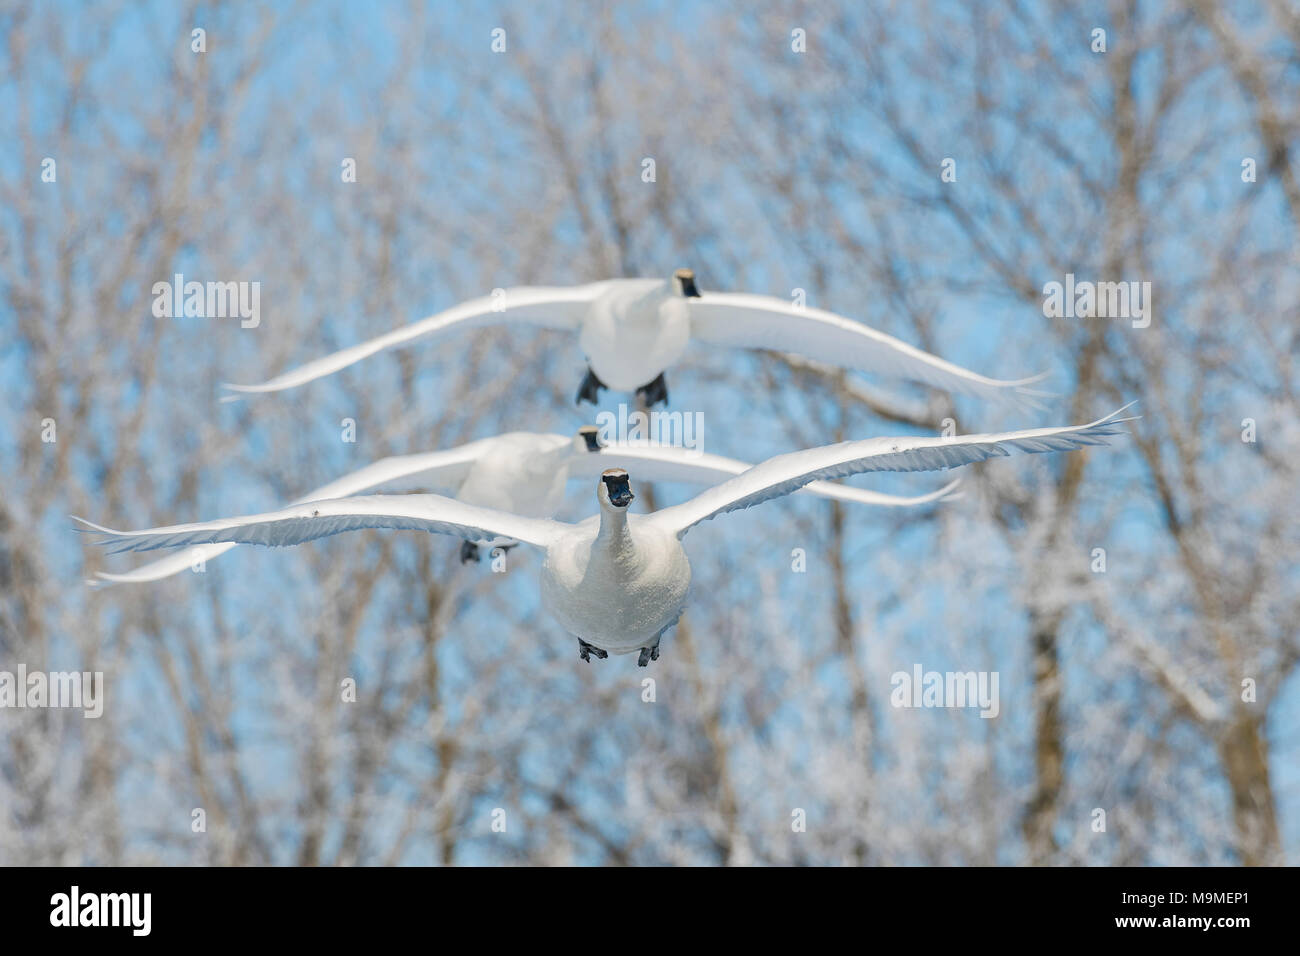 Trumpeter swans (Cygnus buccinator), near St Croix river, WI, USA, late February, by Dominique Braud/Dembinsky Photo Assoc - Stock Image